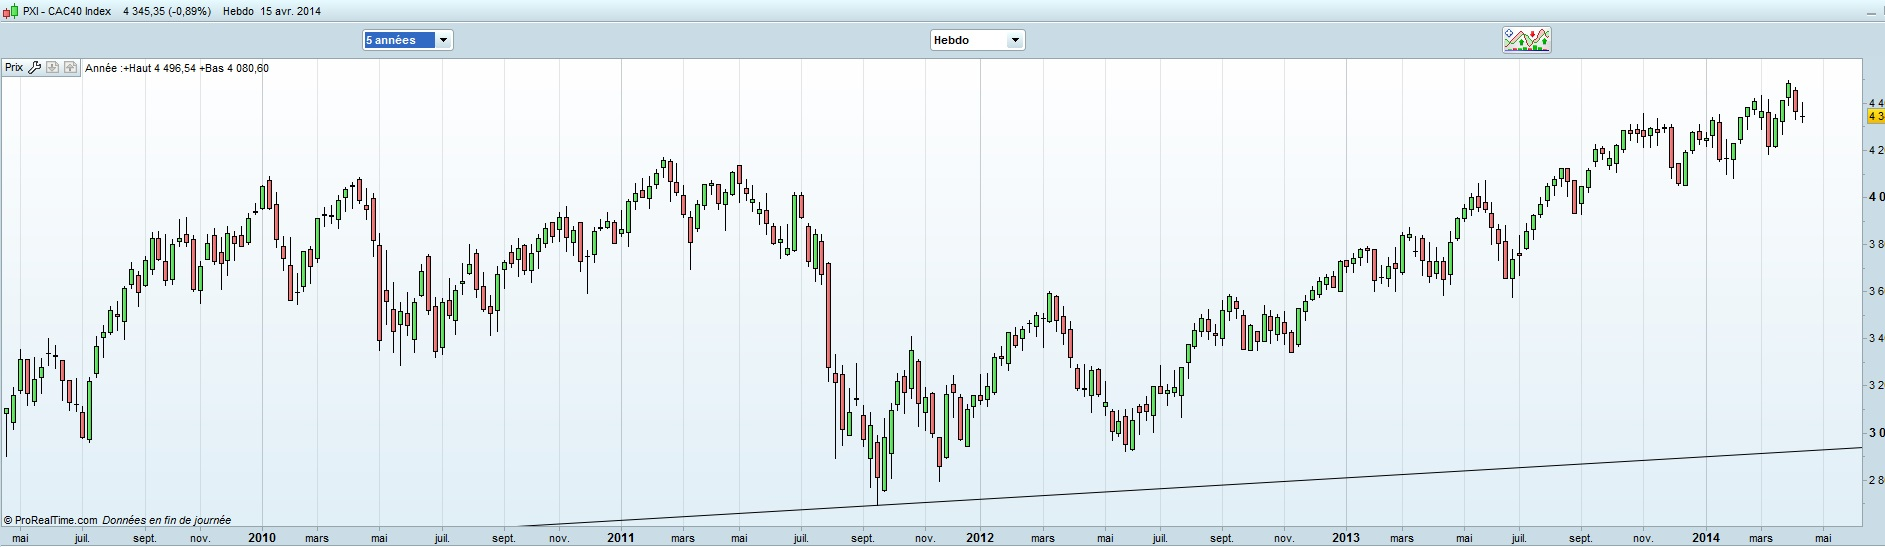 cac40_pxi_weekly 5 ans 15 avril 2014